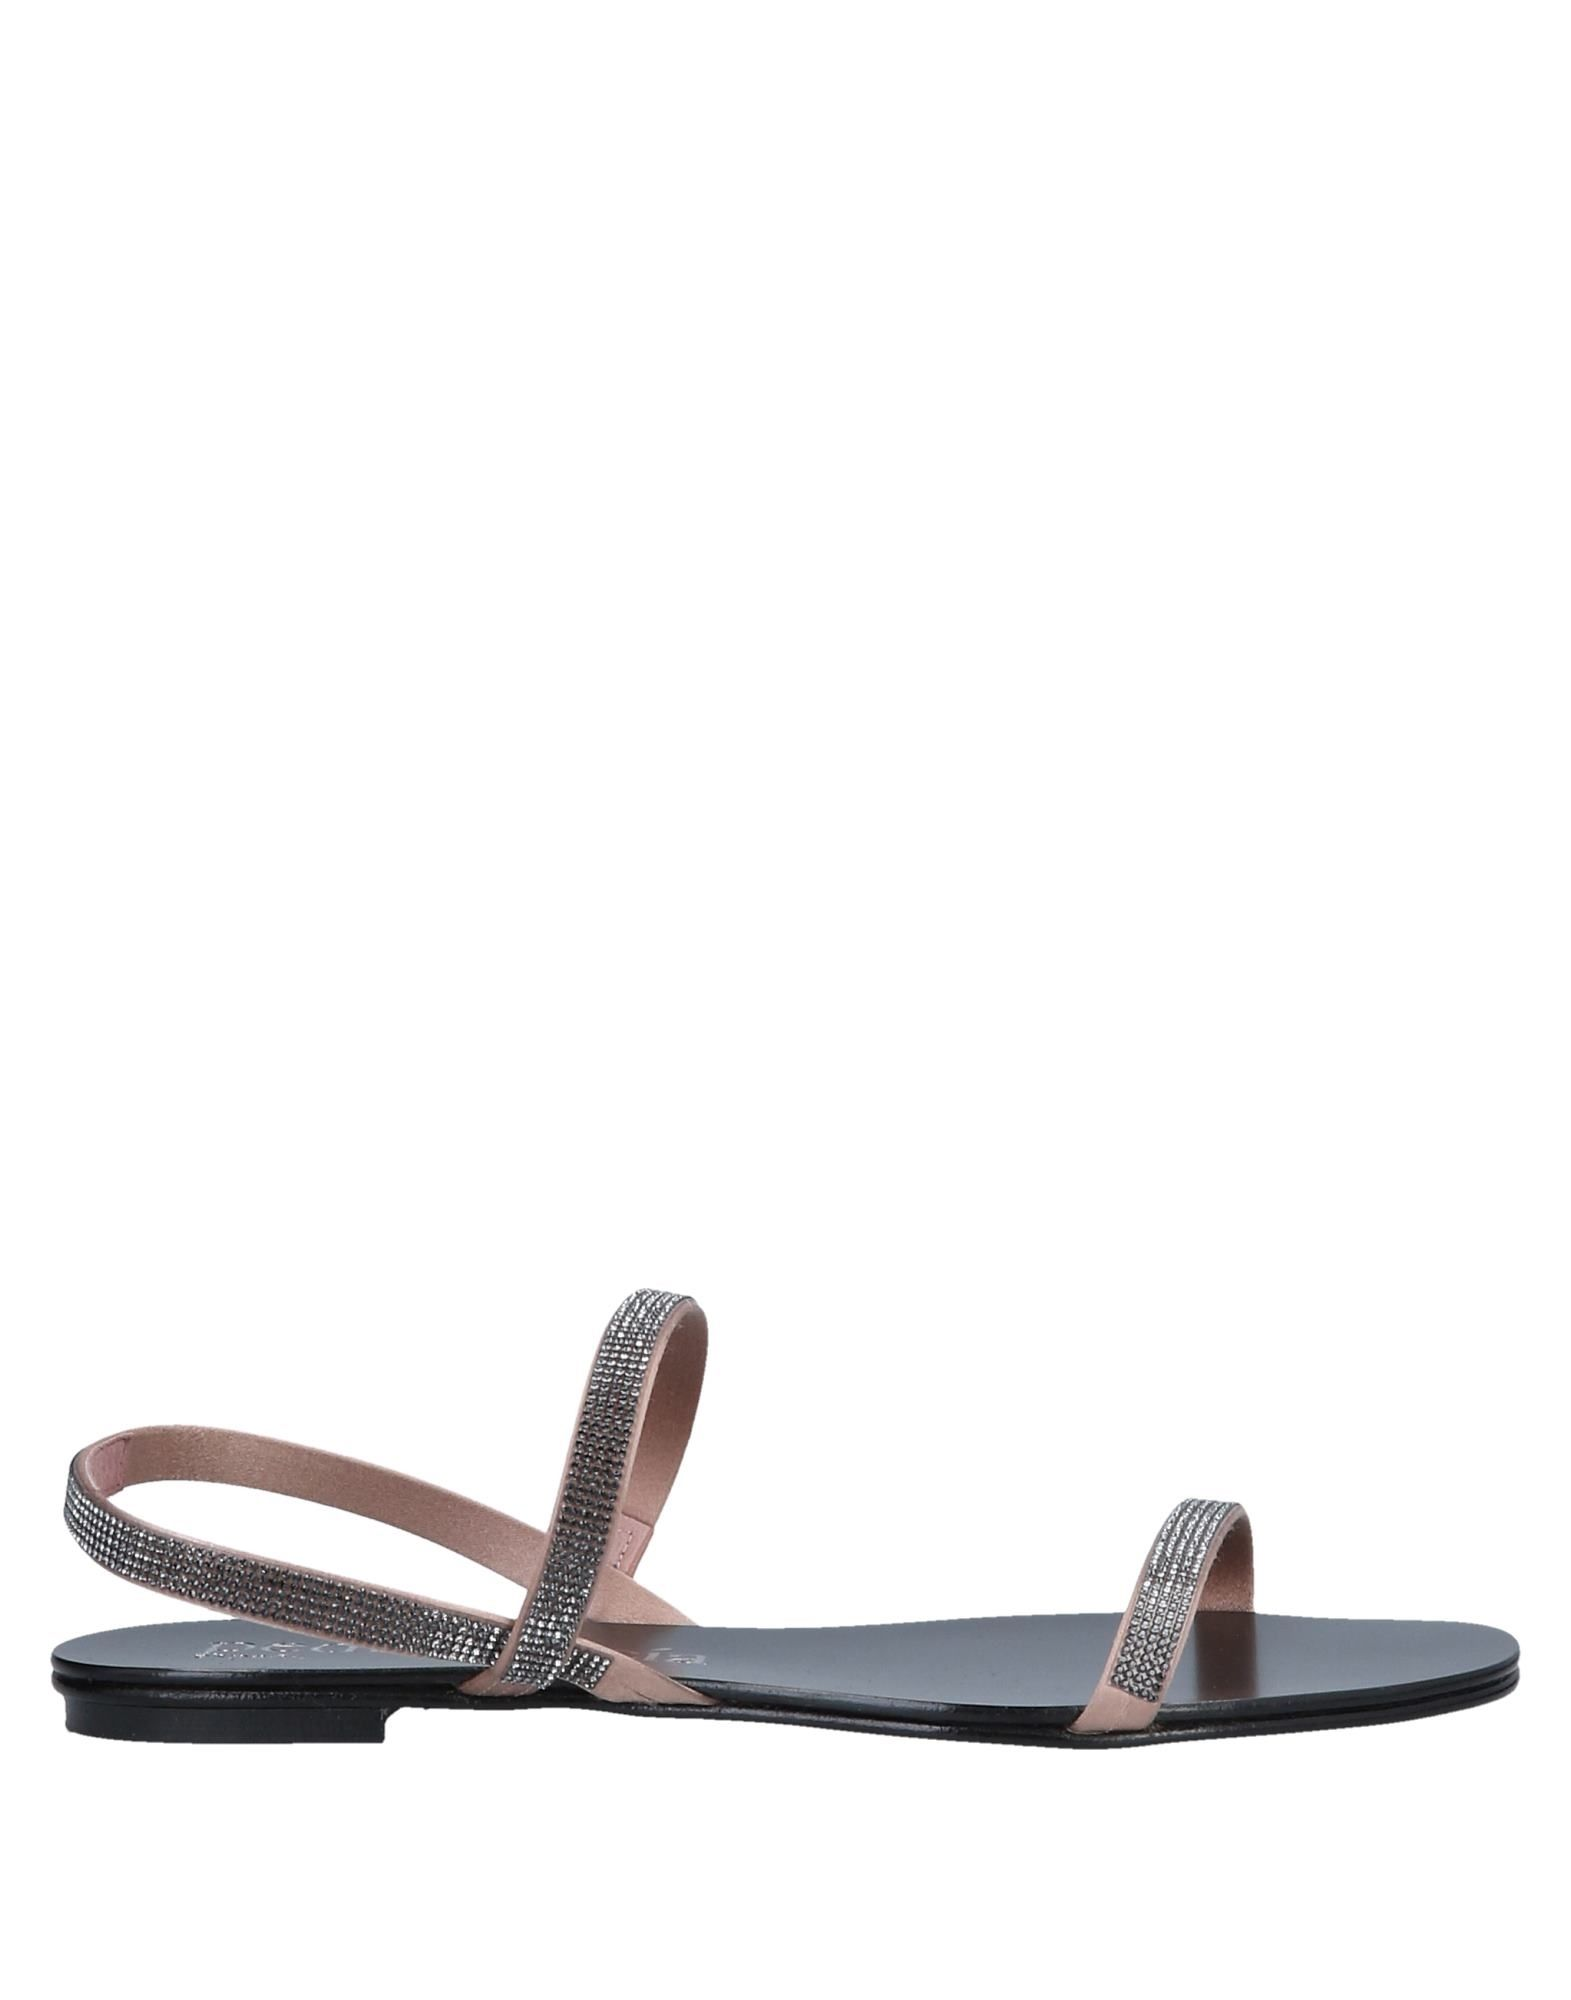 dfd4b5382fb2 Pedro García Sandals - Women Pedro García Sandals online on YOOX ...